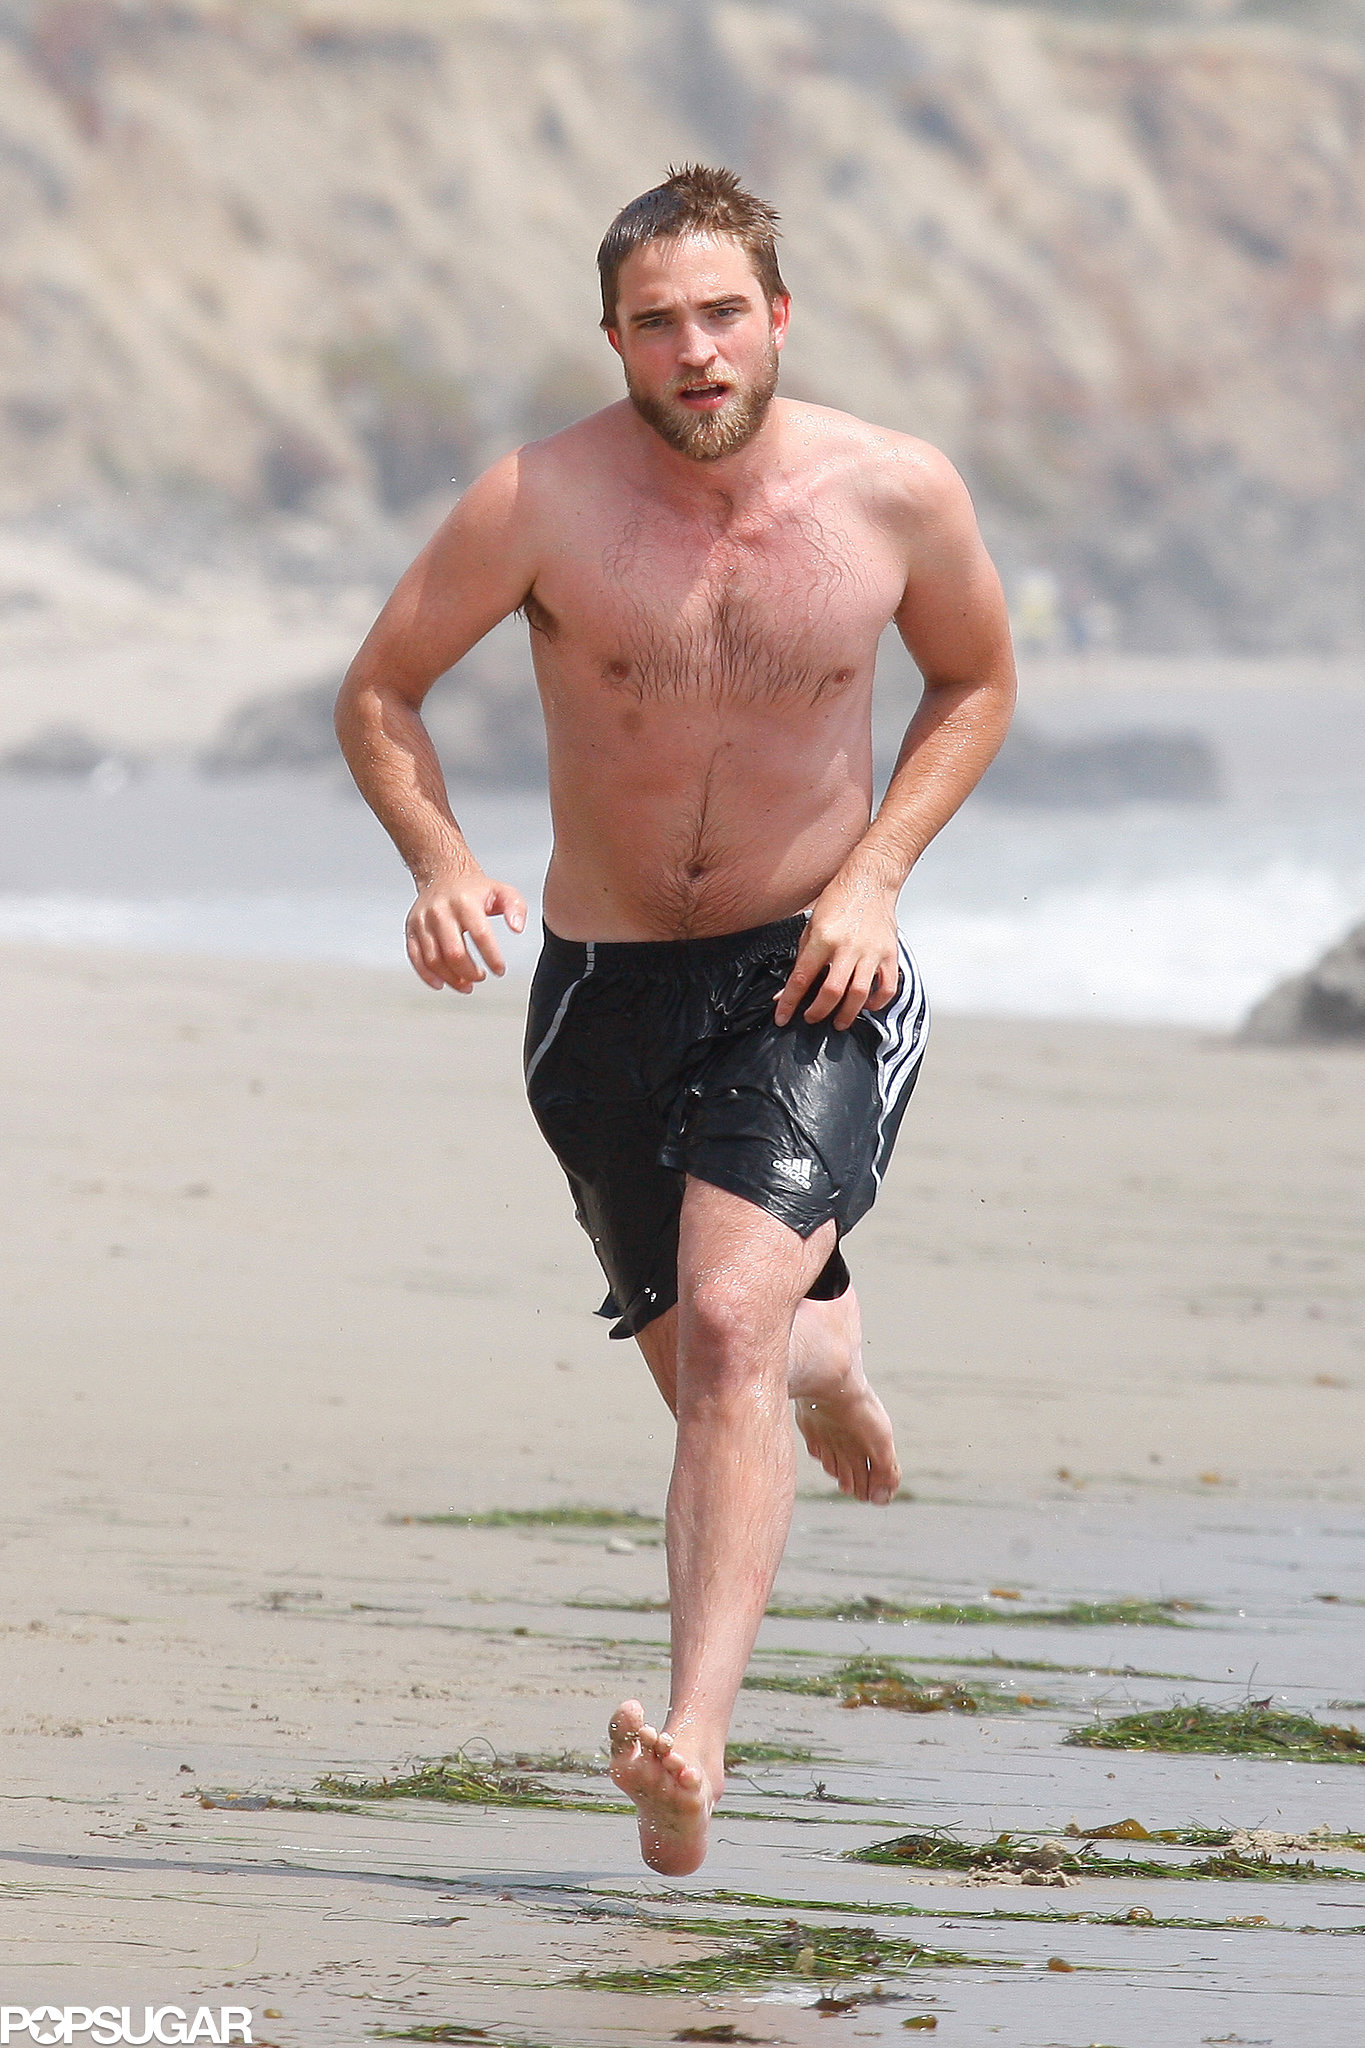 Robert Pattinson and his muscles hit the sand in Malibu in March 2012.